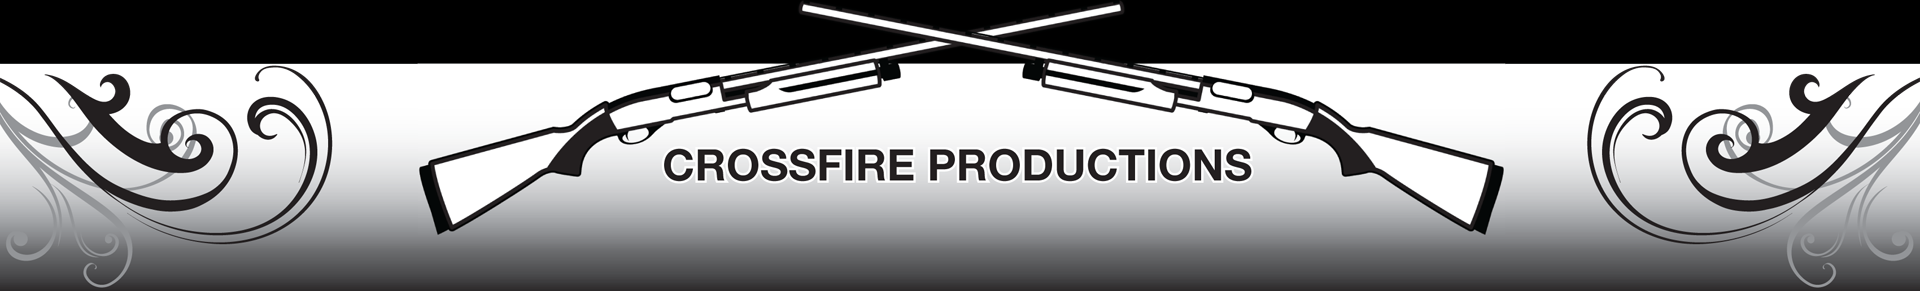 Crossfire Productions Logo